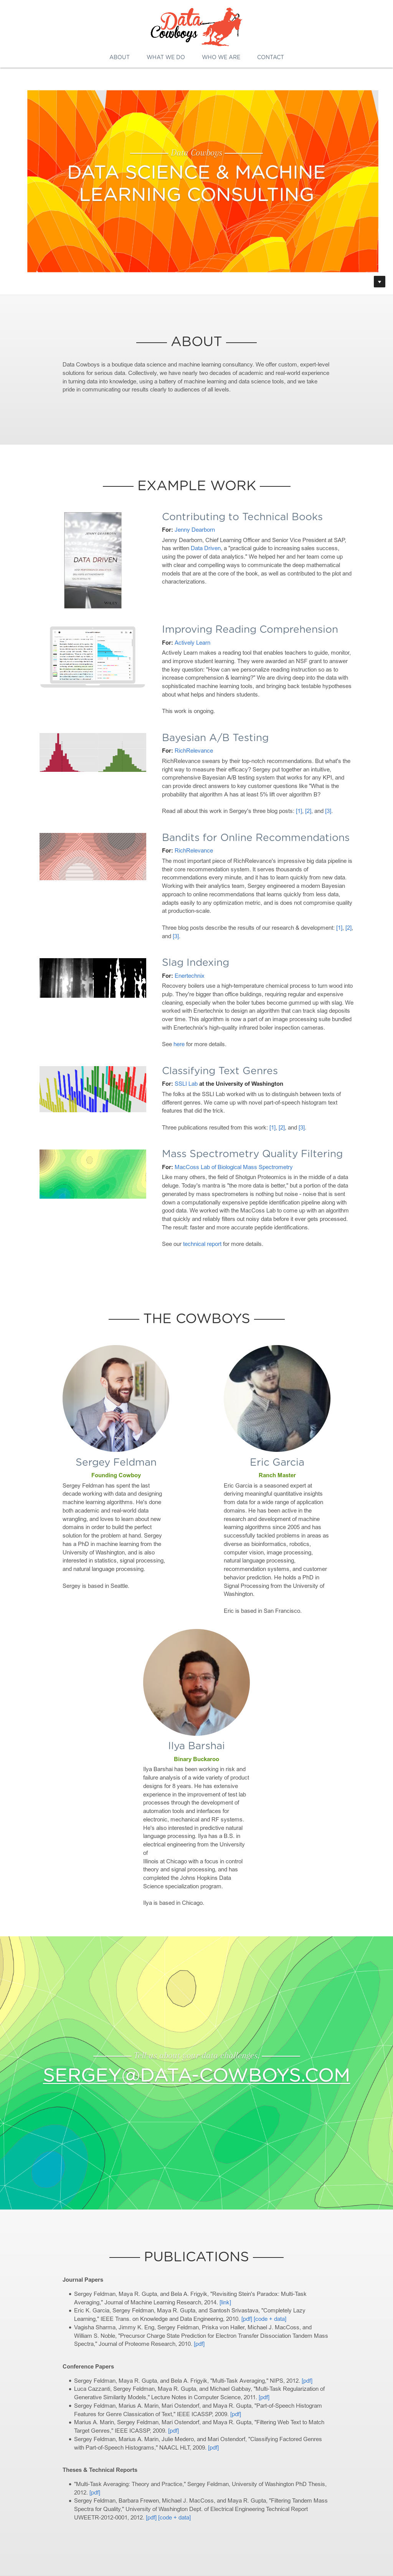 Data Cowboys Competitors, Revenue and Employees - Owler Company Profile